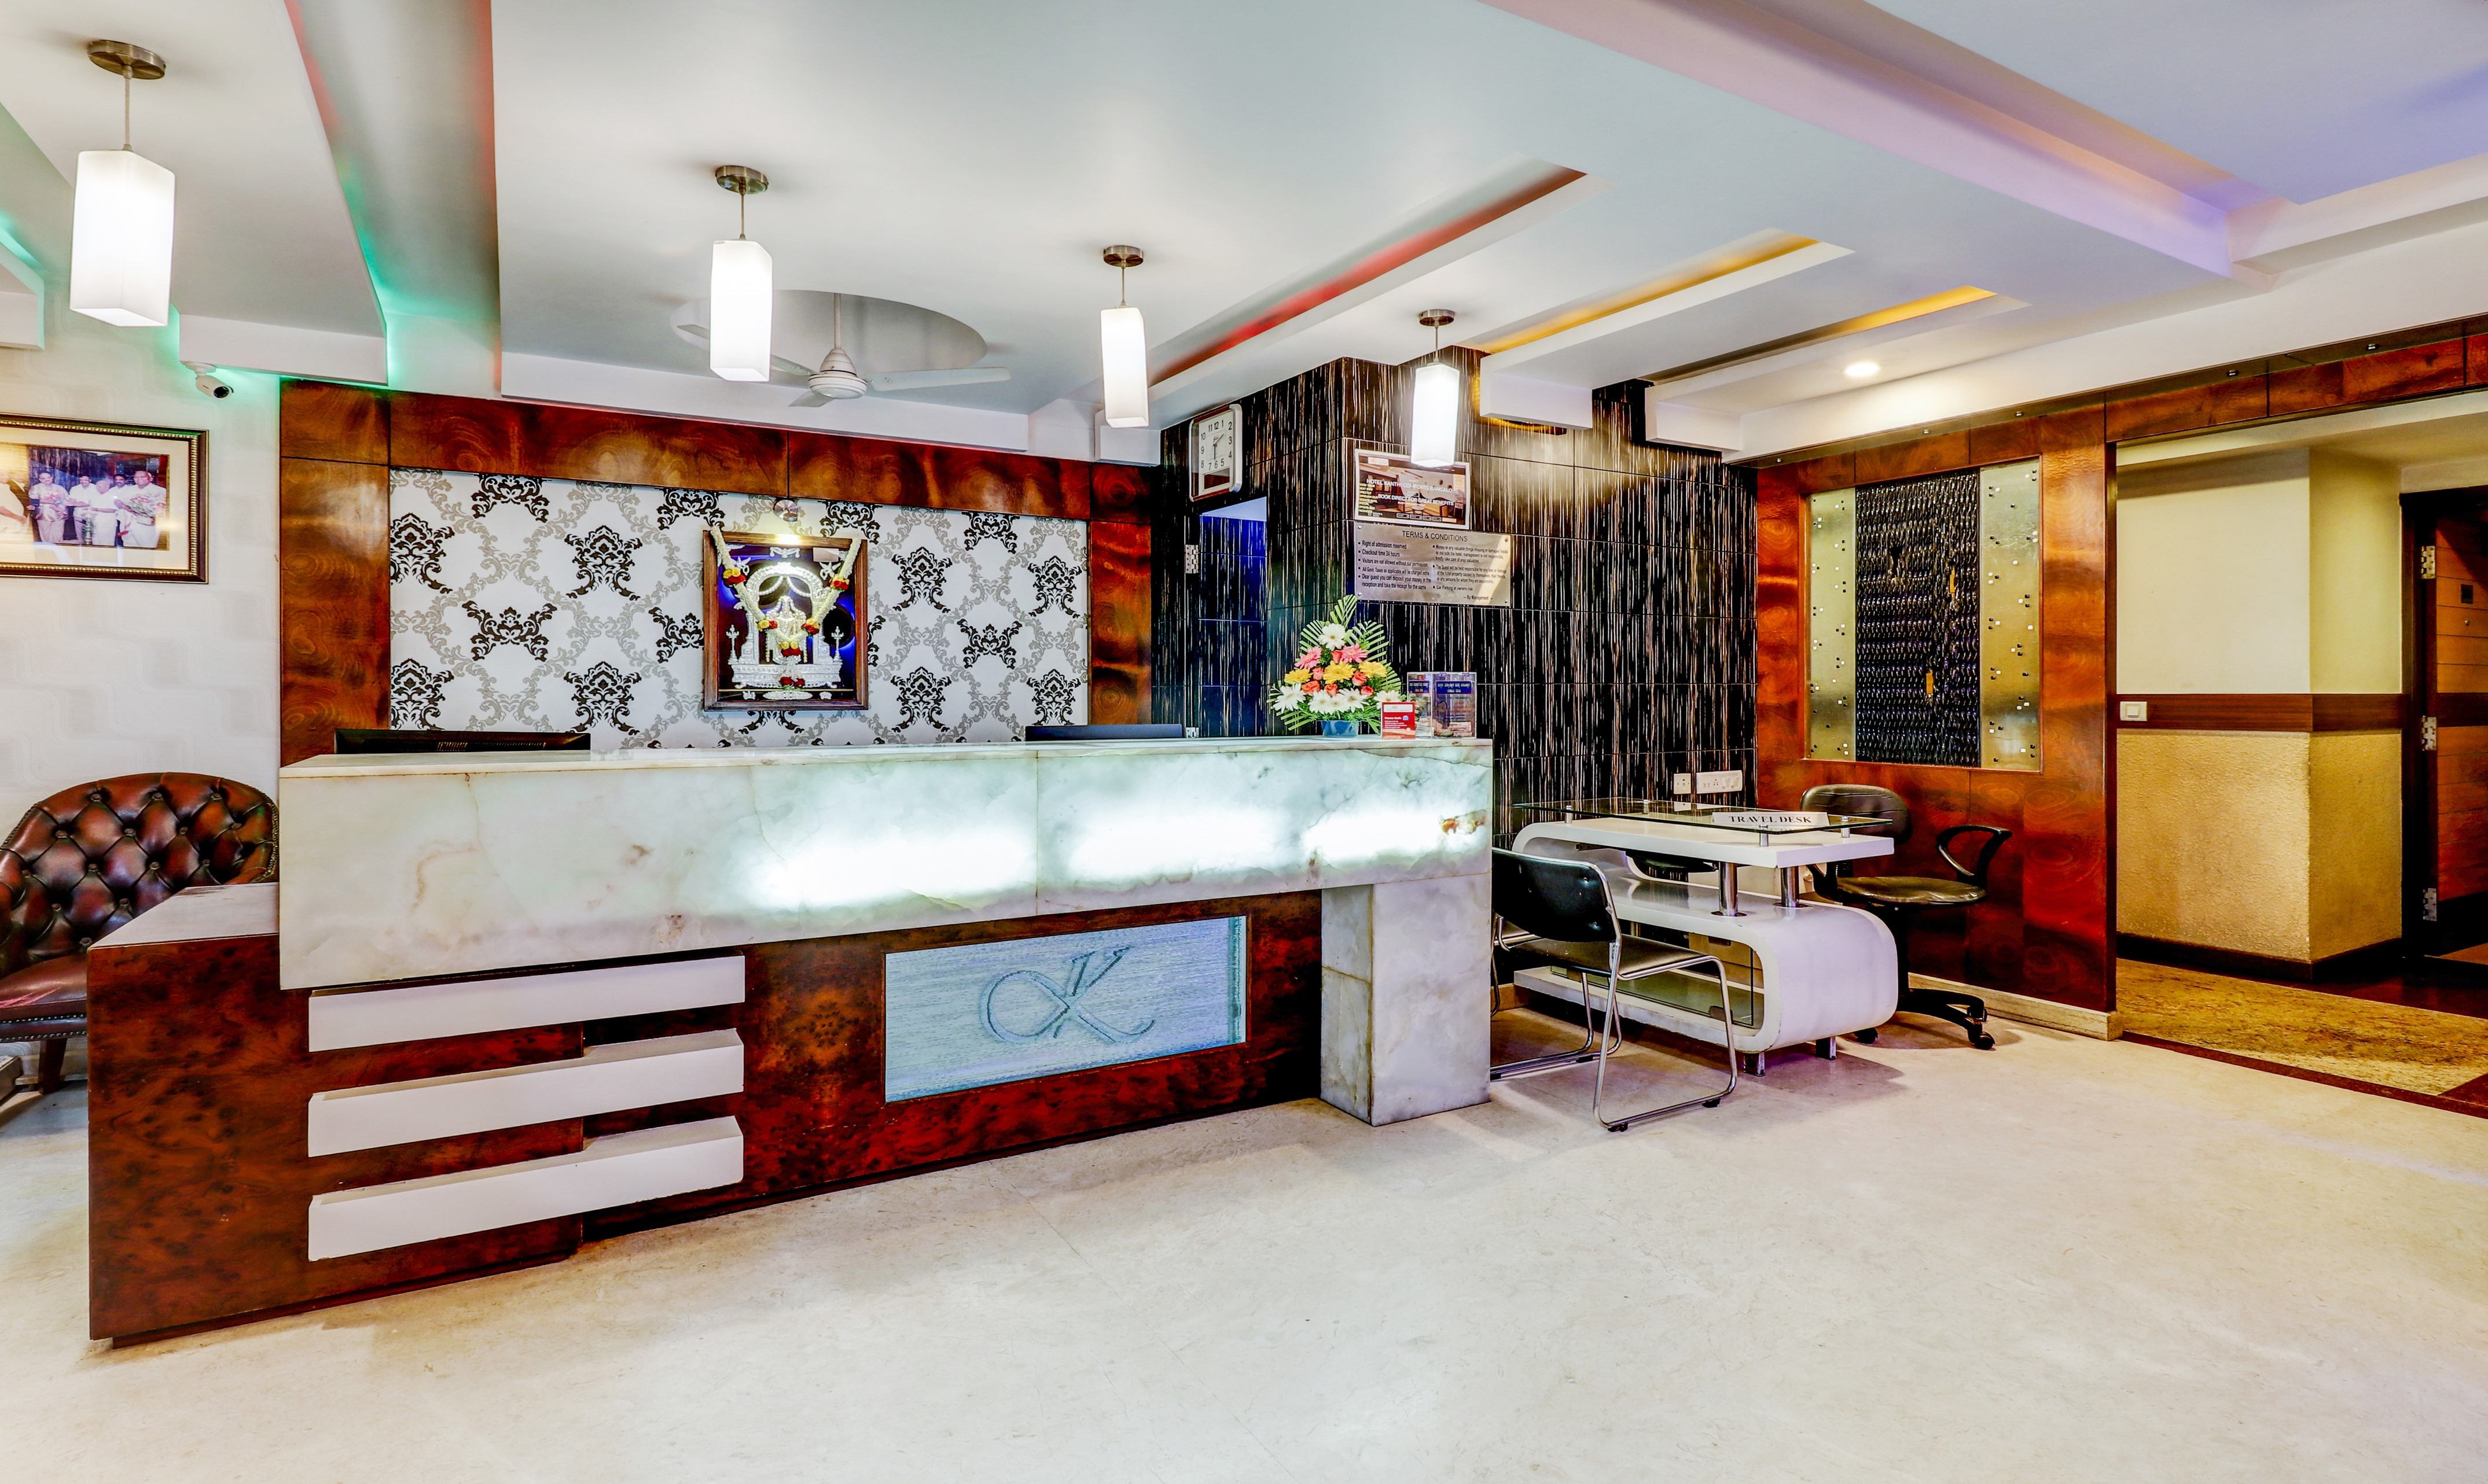 Travel Air Jc Road Bangalore Hotels Near Race Course Road Bangalore Tariff 799